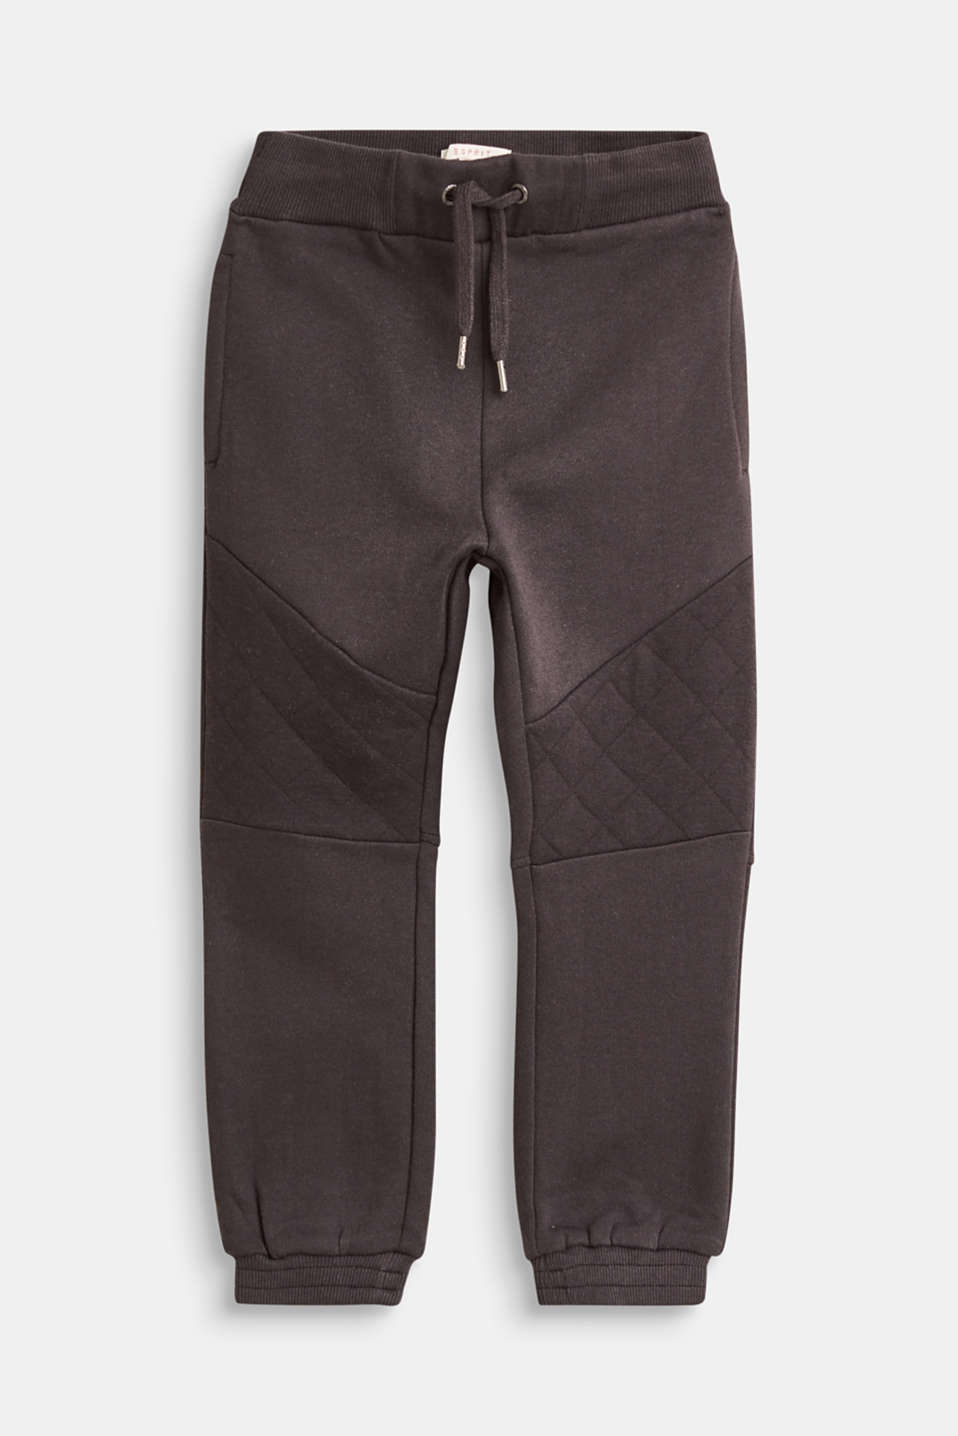 Esprit - Tracksuit bottoms with topstitched seams, 100% cotton